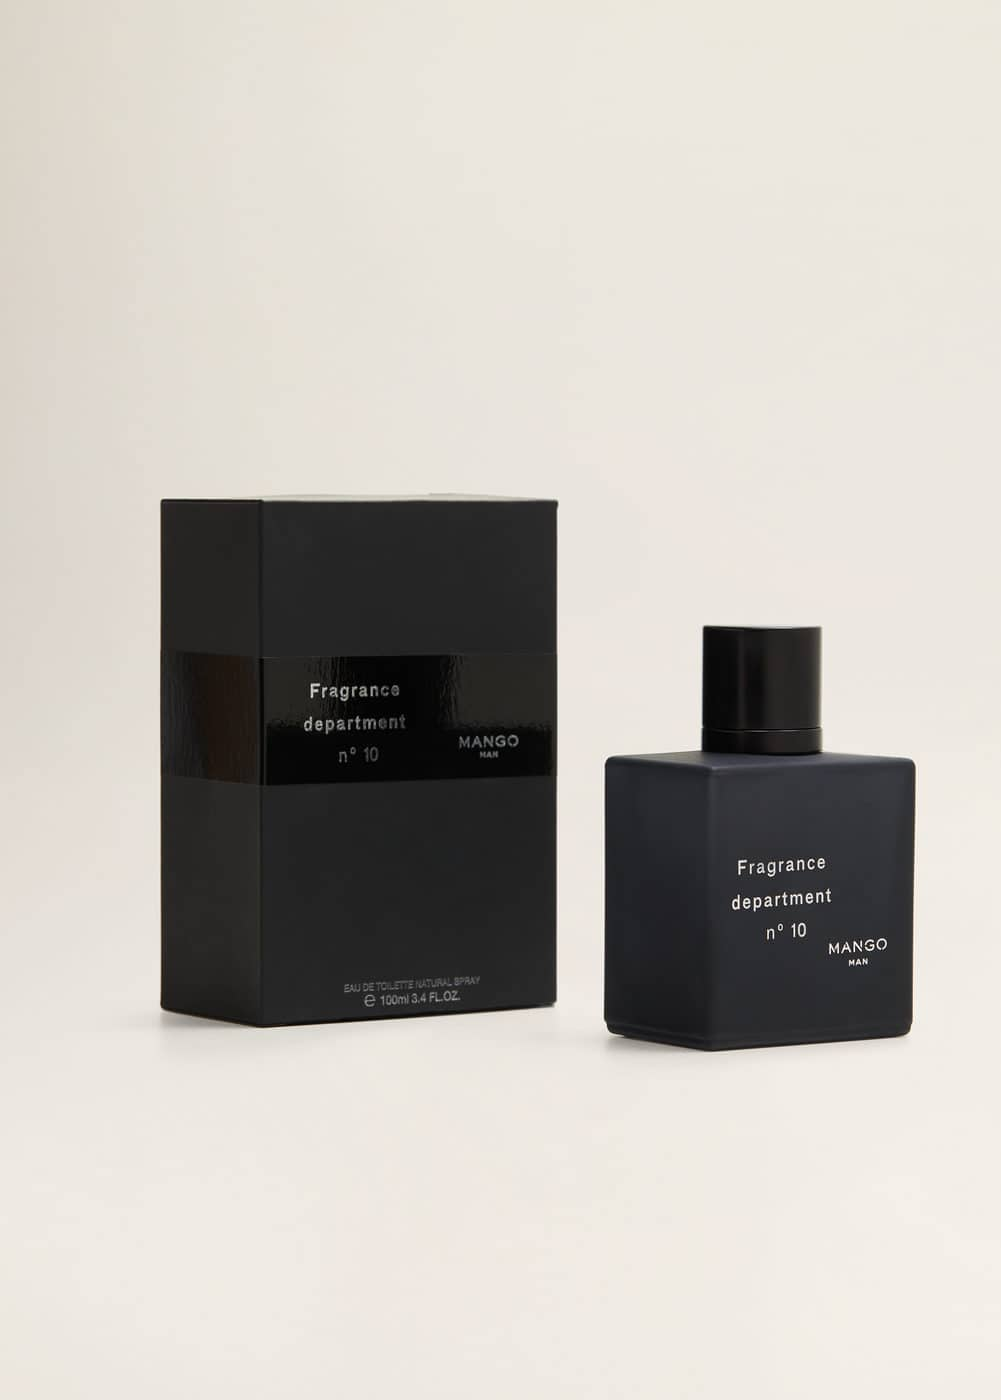 Mango - Fragrance Department nº10 100mL - 2